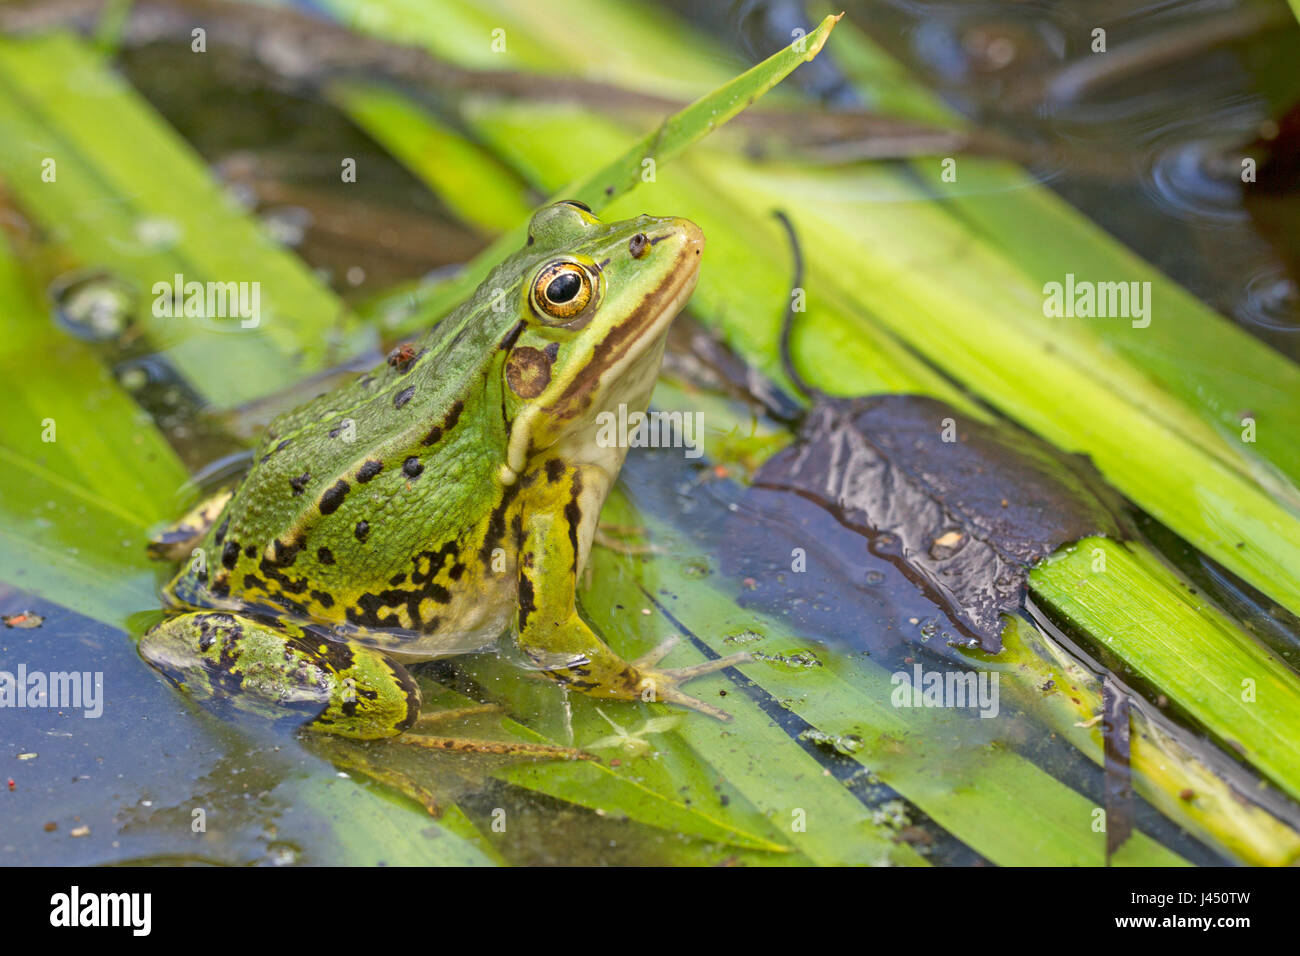 Pool frog (Rana lessonae) resting on branches in the water - Stock Image